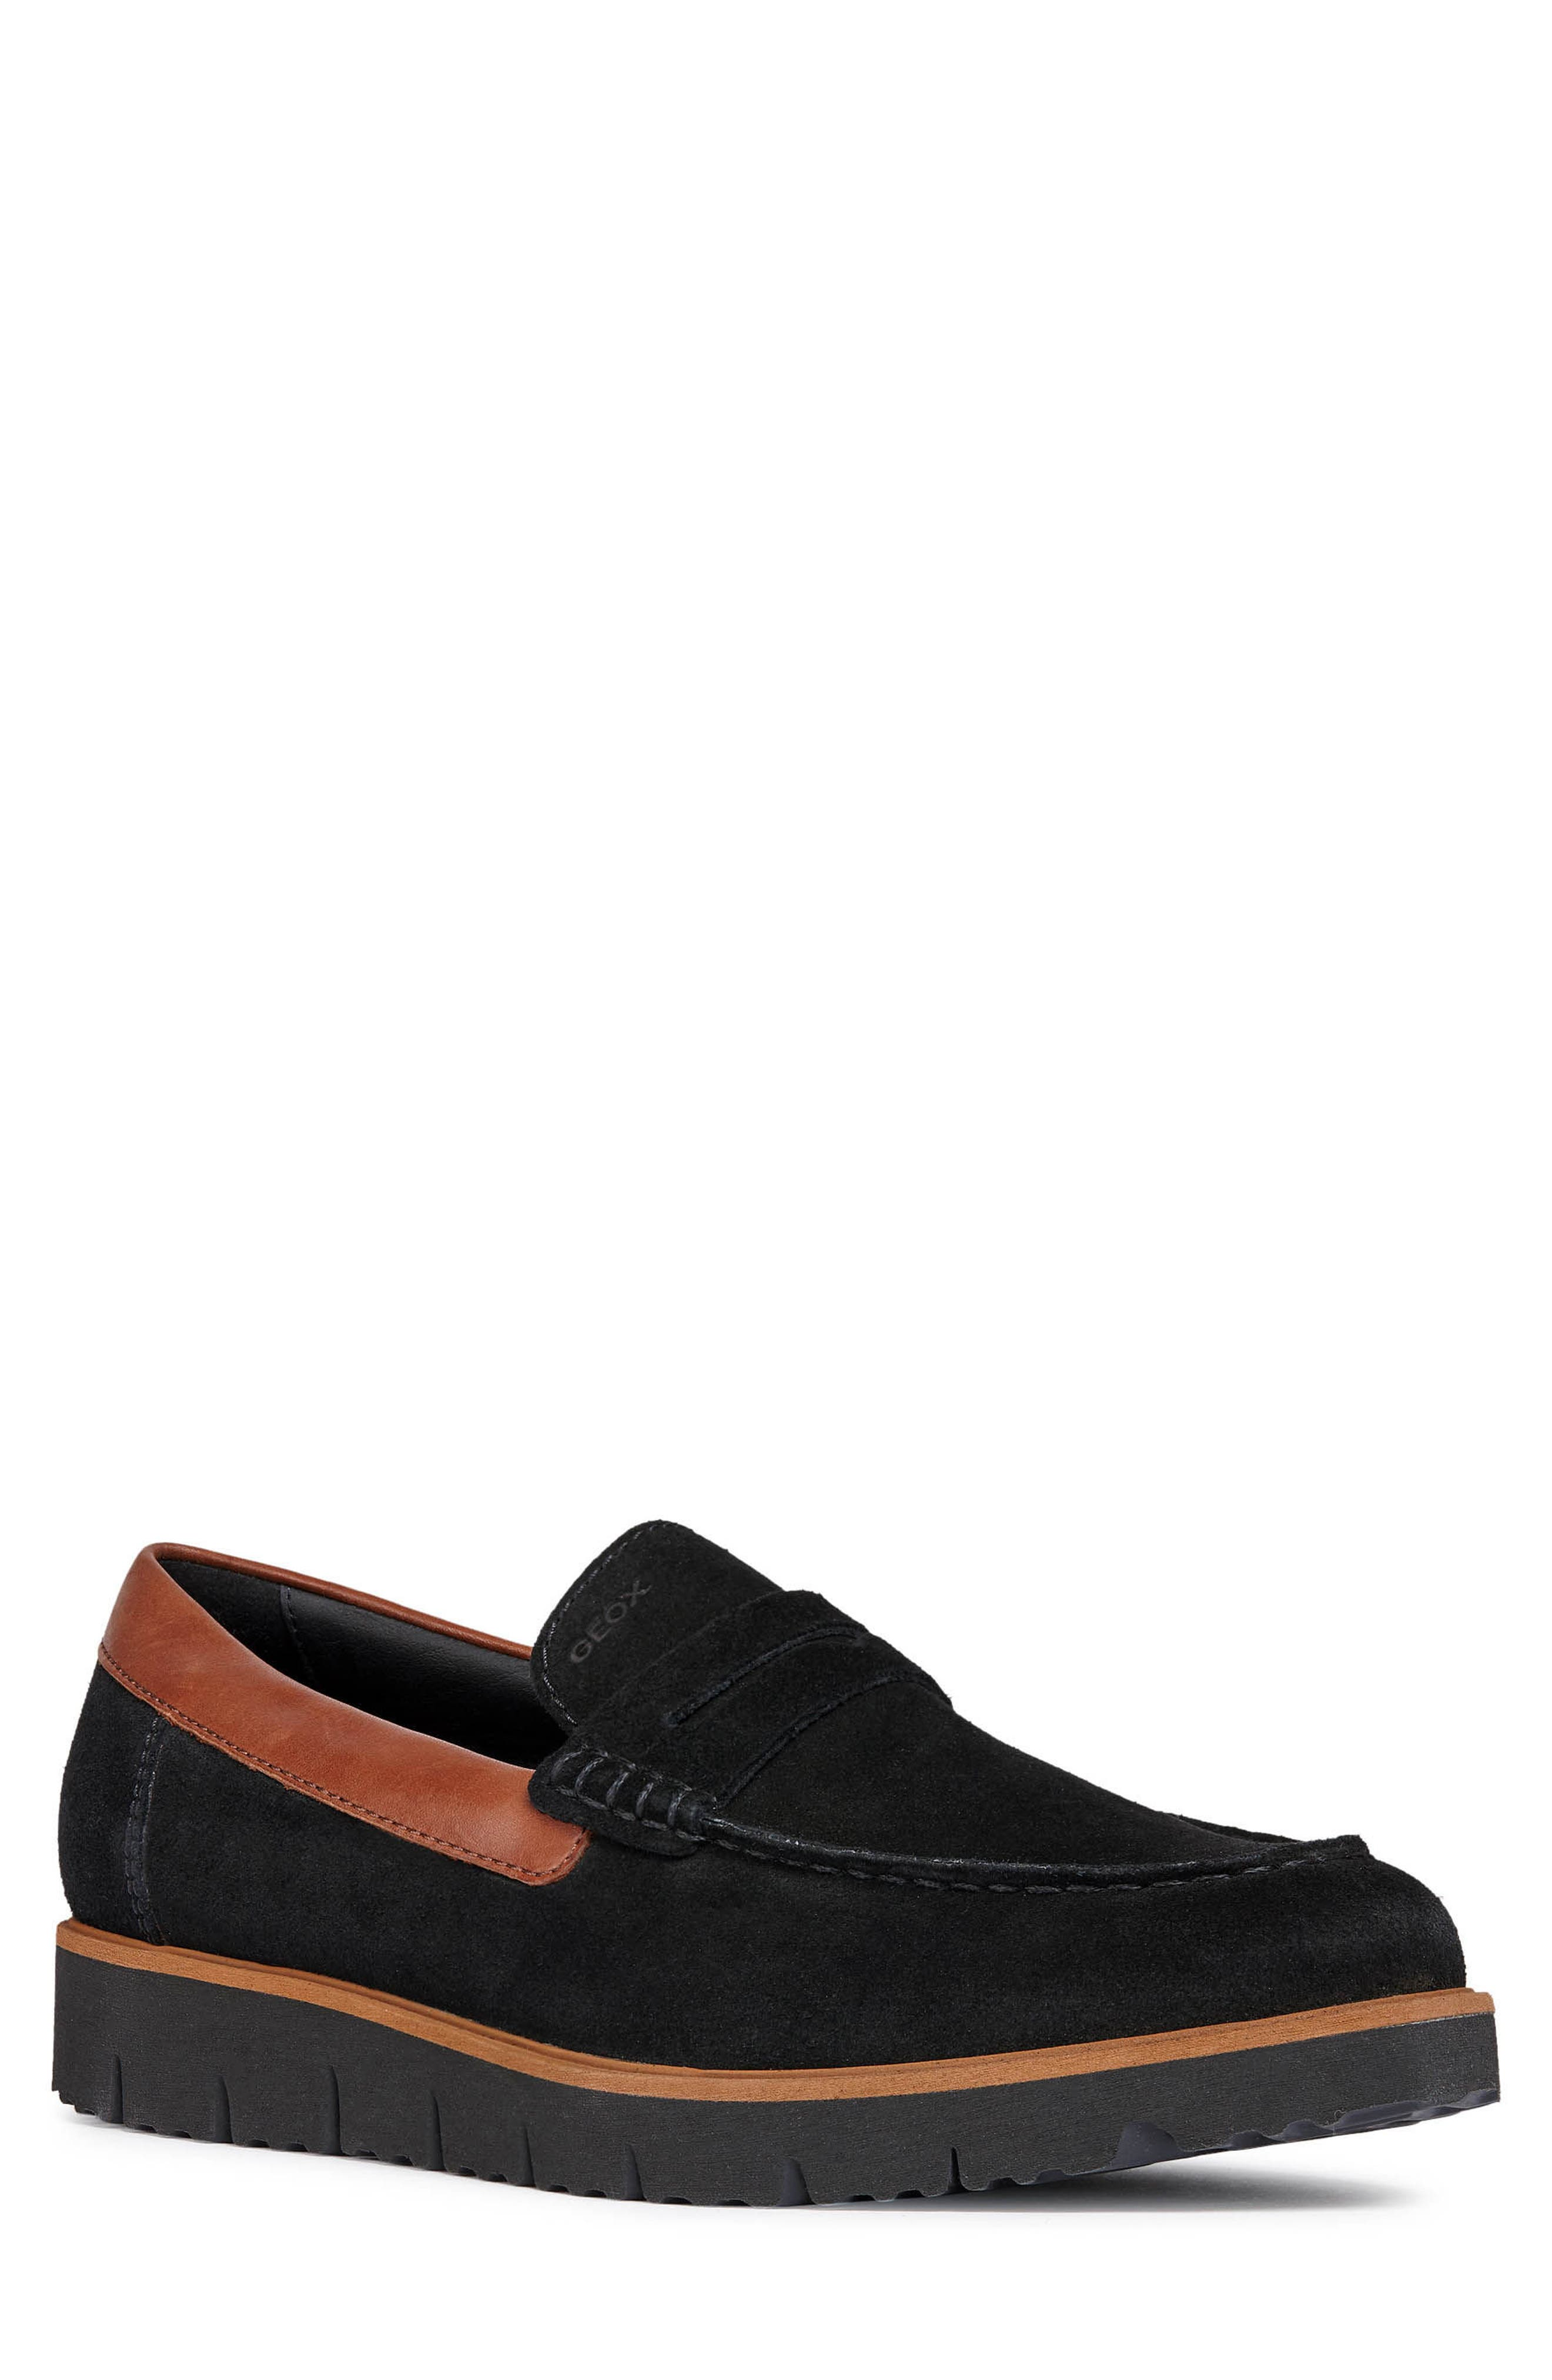 New Pluges 6 Penny Loafer,                             Main thumbnail 1, color,                             002